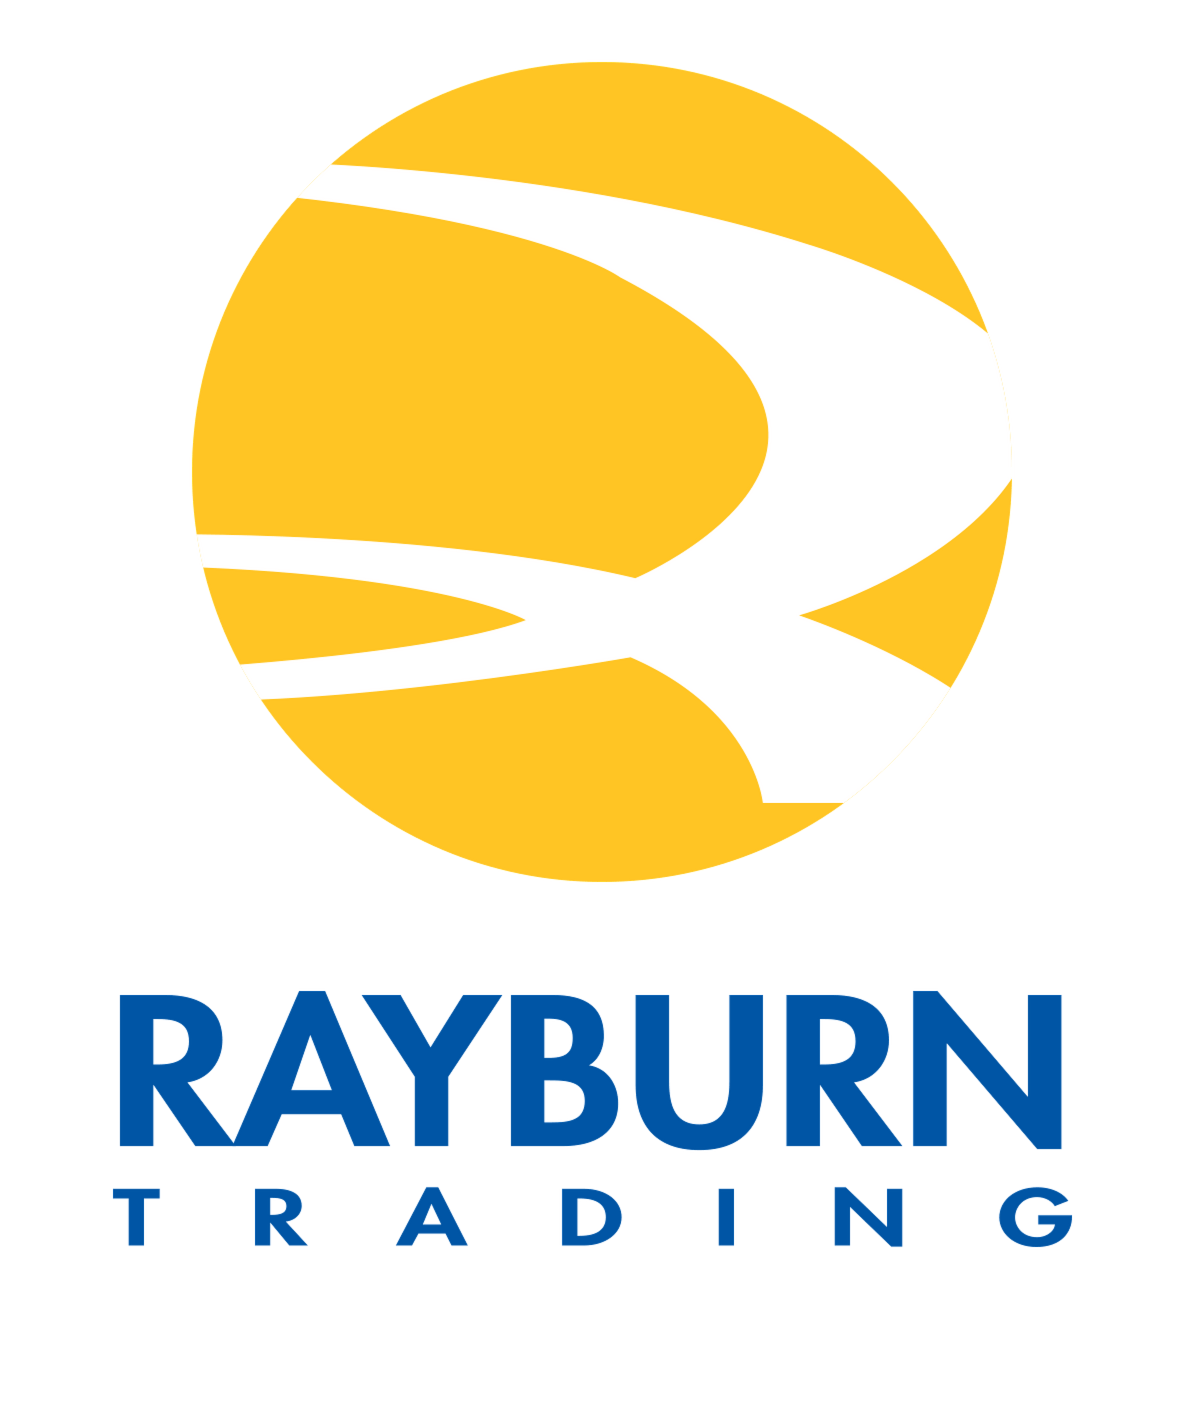 Rayburn Trading Co Ltd